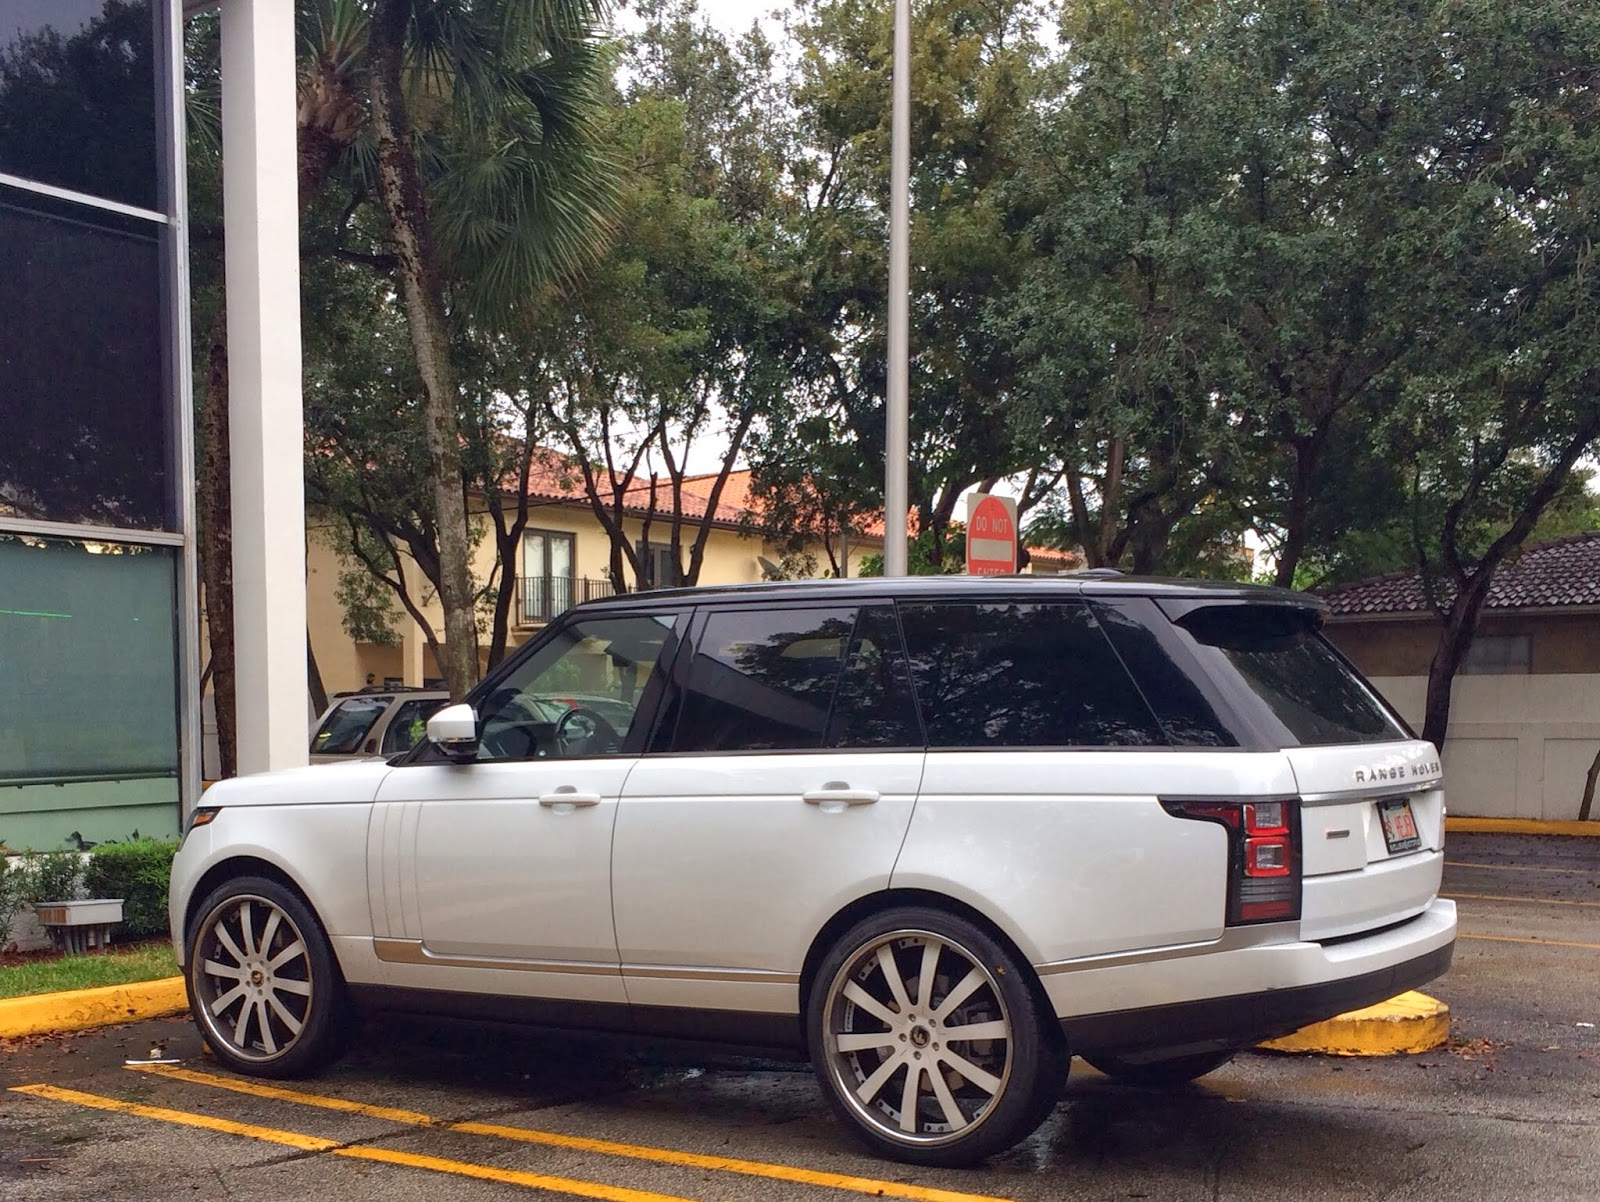 Range Rover Supercharged with White Rims